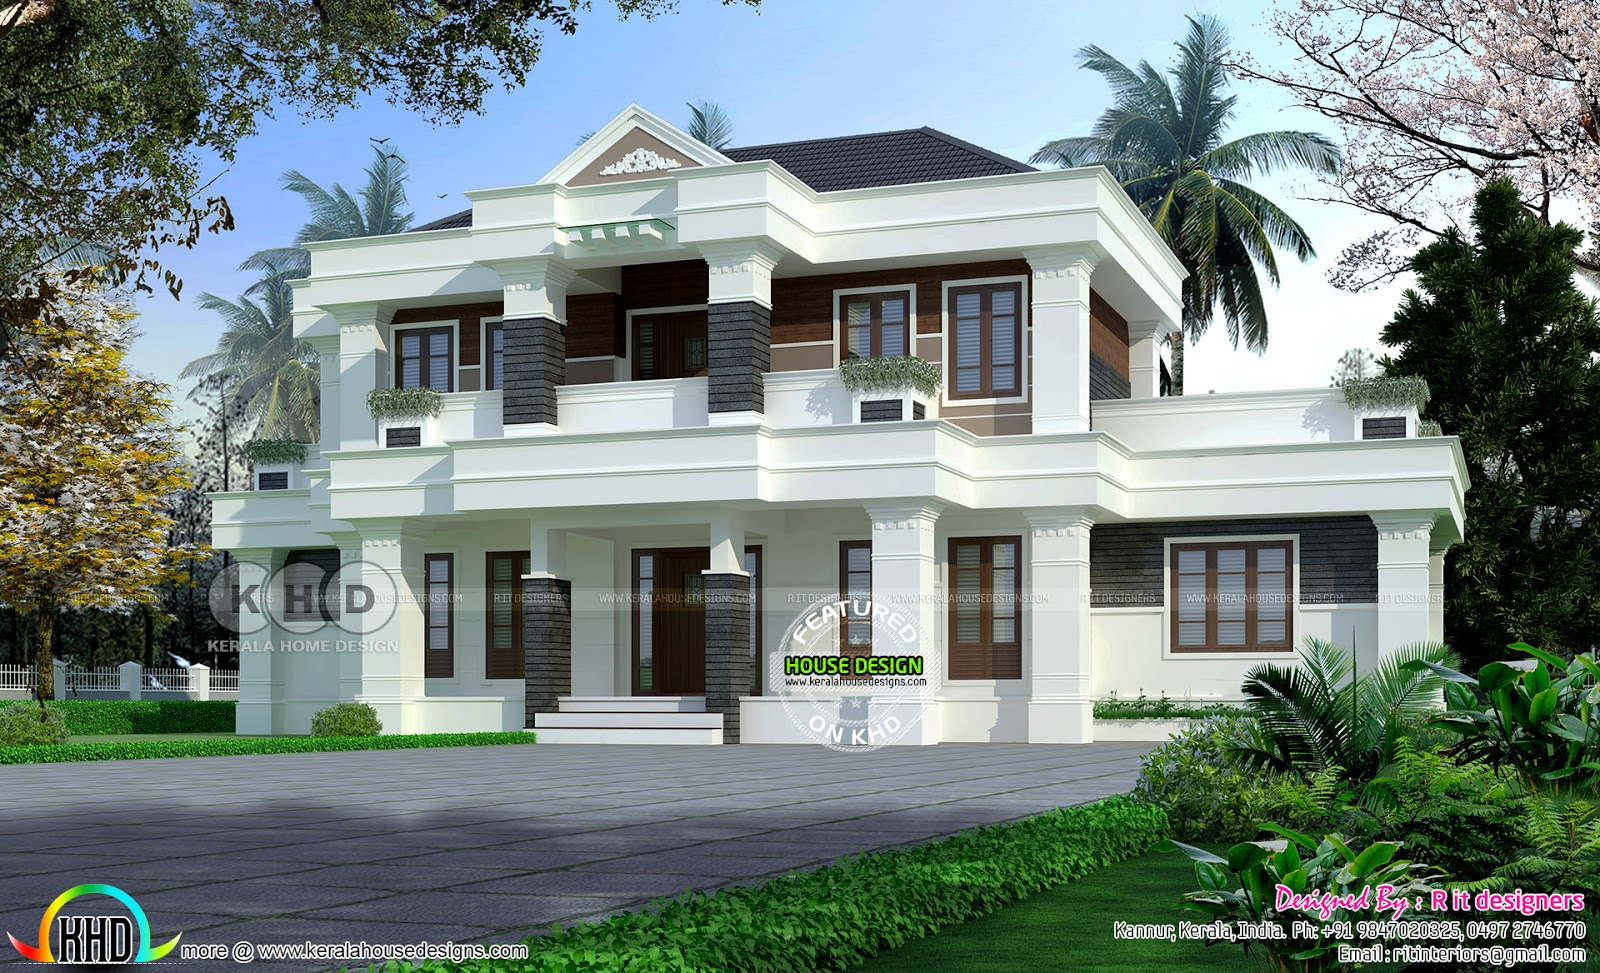 Modern Colonial mix house ₹65 lakhs - Kerala home design ...